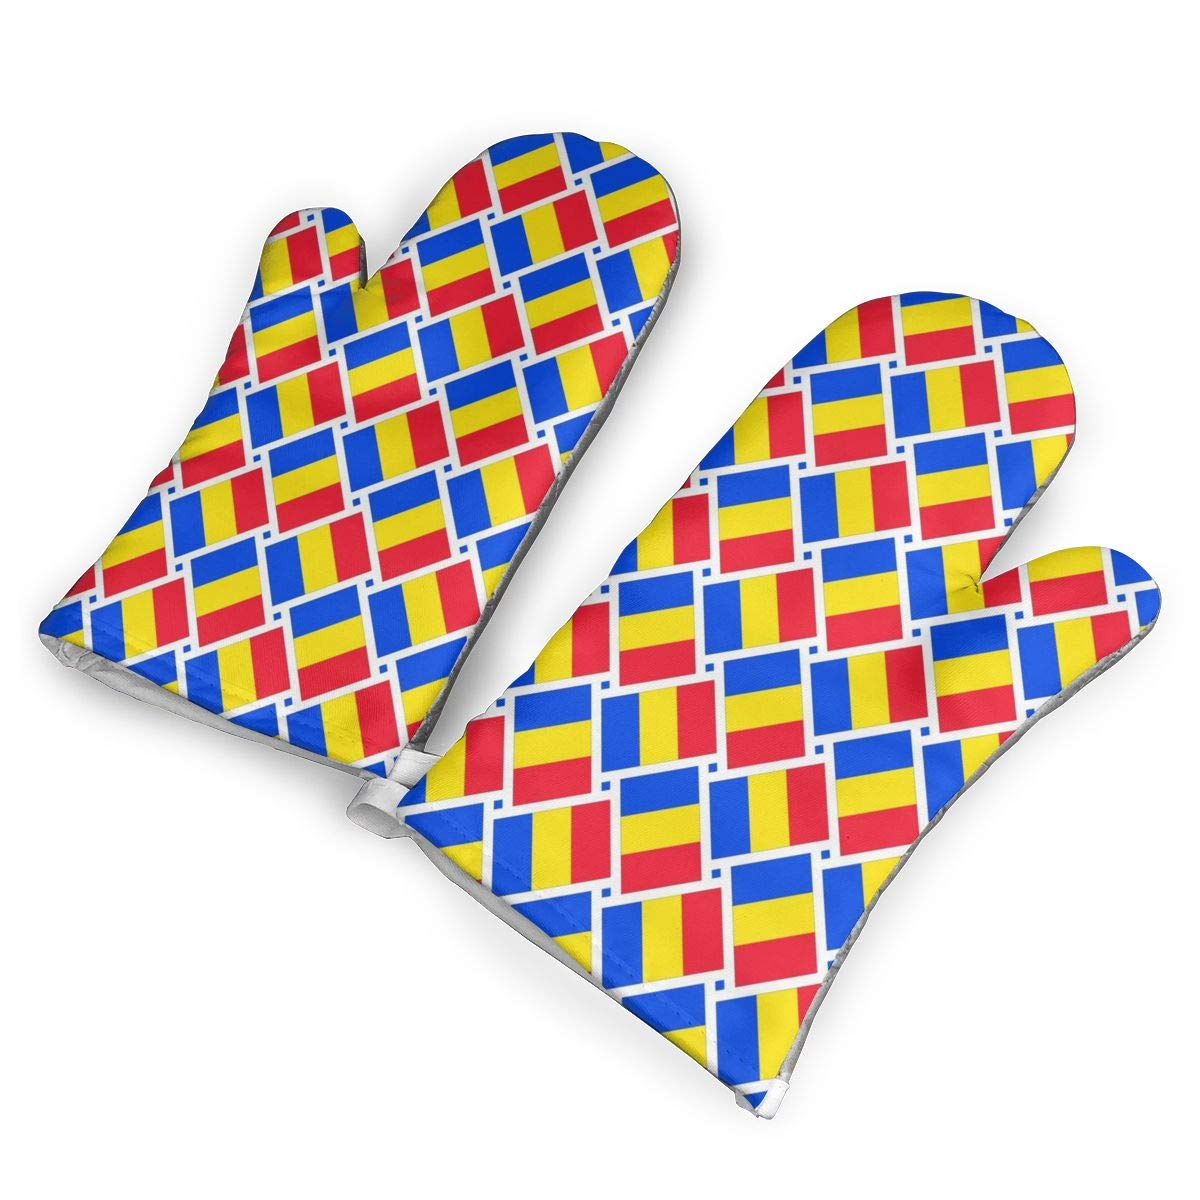 Oven Mitts 5.5 X 12 In Romania Flag Weave Non-Slip Kitchen Oven Gloves Heat Resistant Washable Cotton Lining by KIXYOUHUU